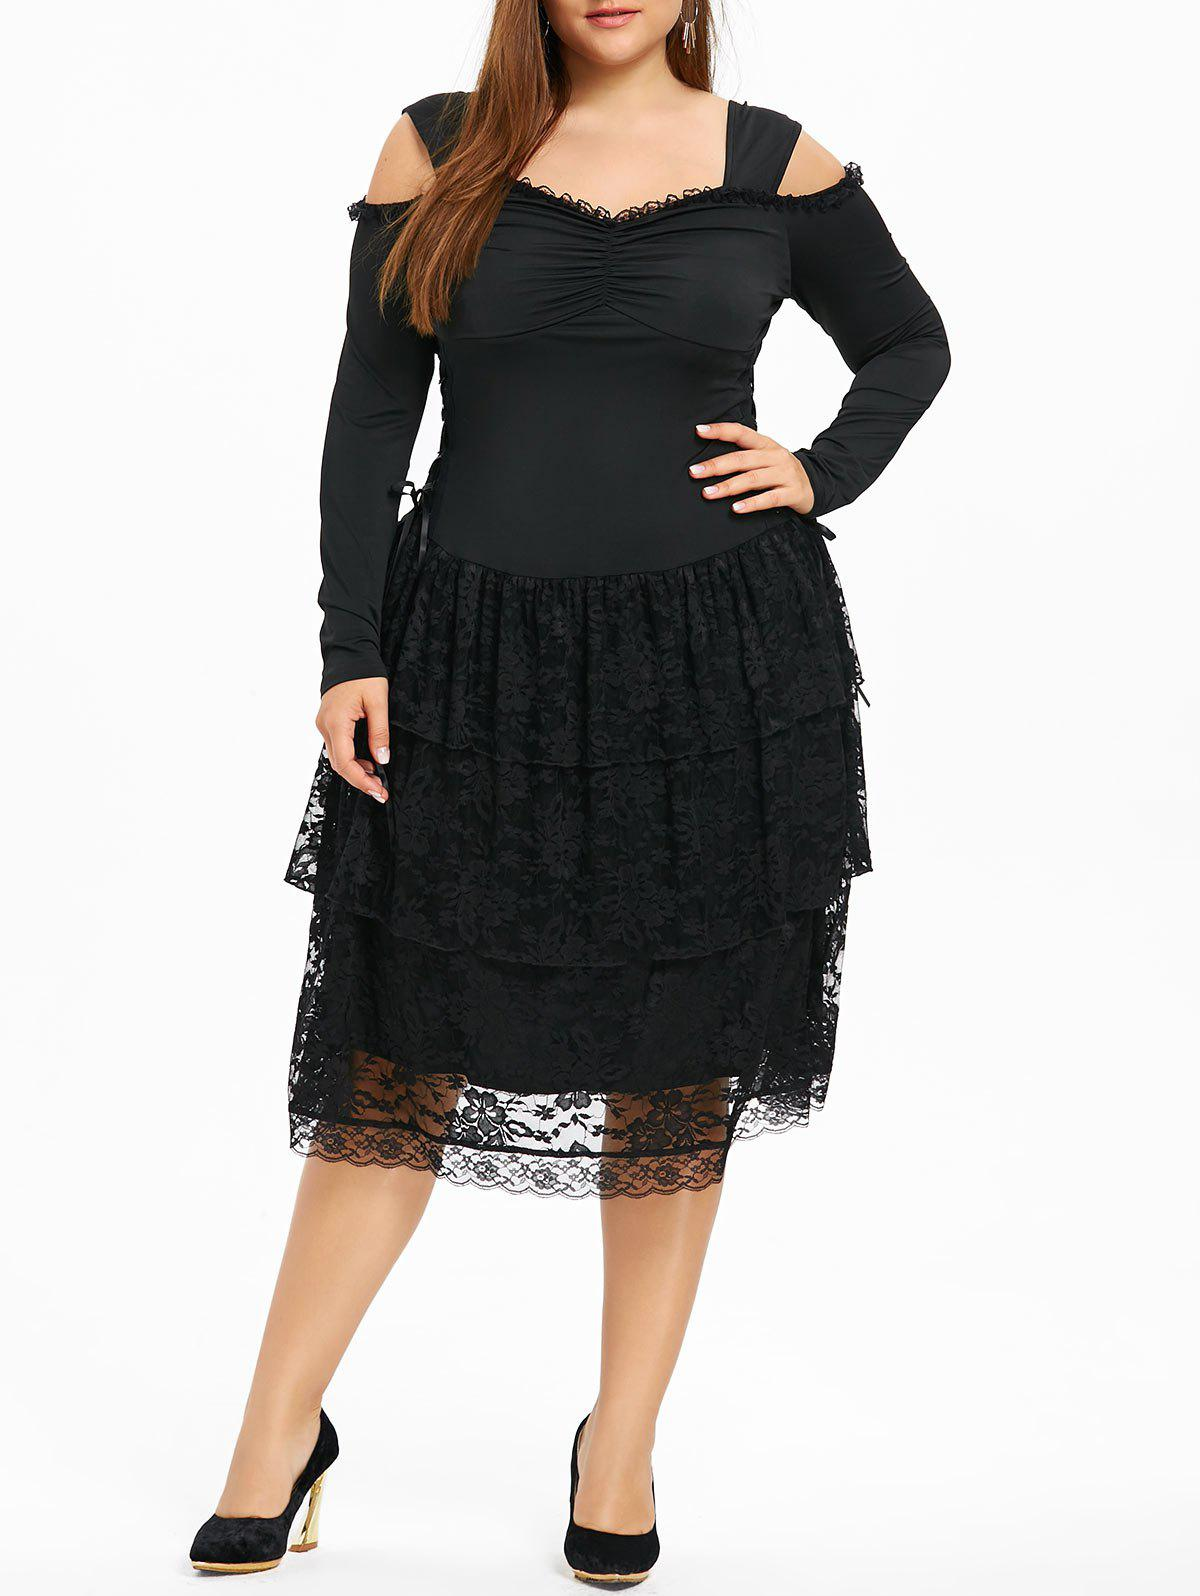 54% OFF] Plus Size Open Shoulder Layered Gothic Dress | Rosegal